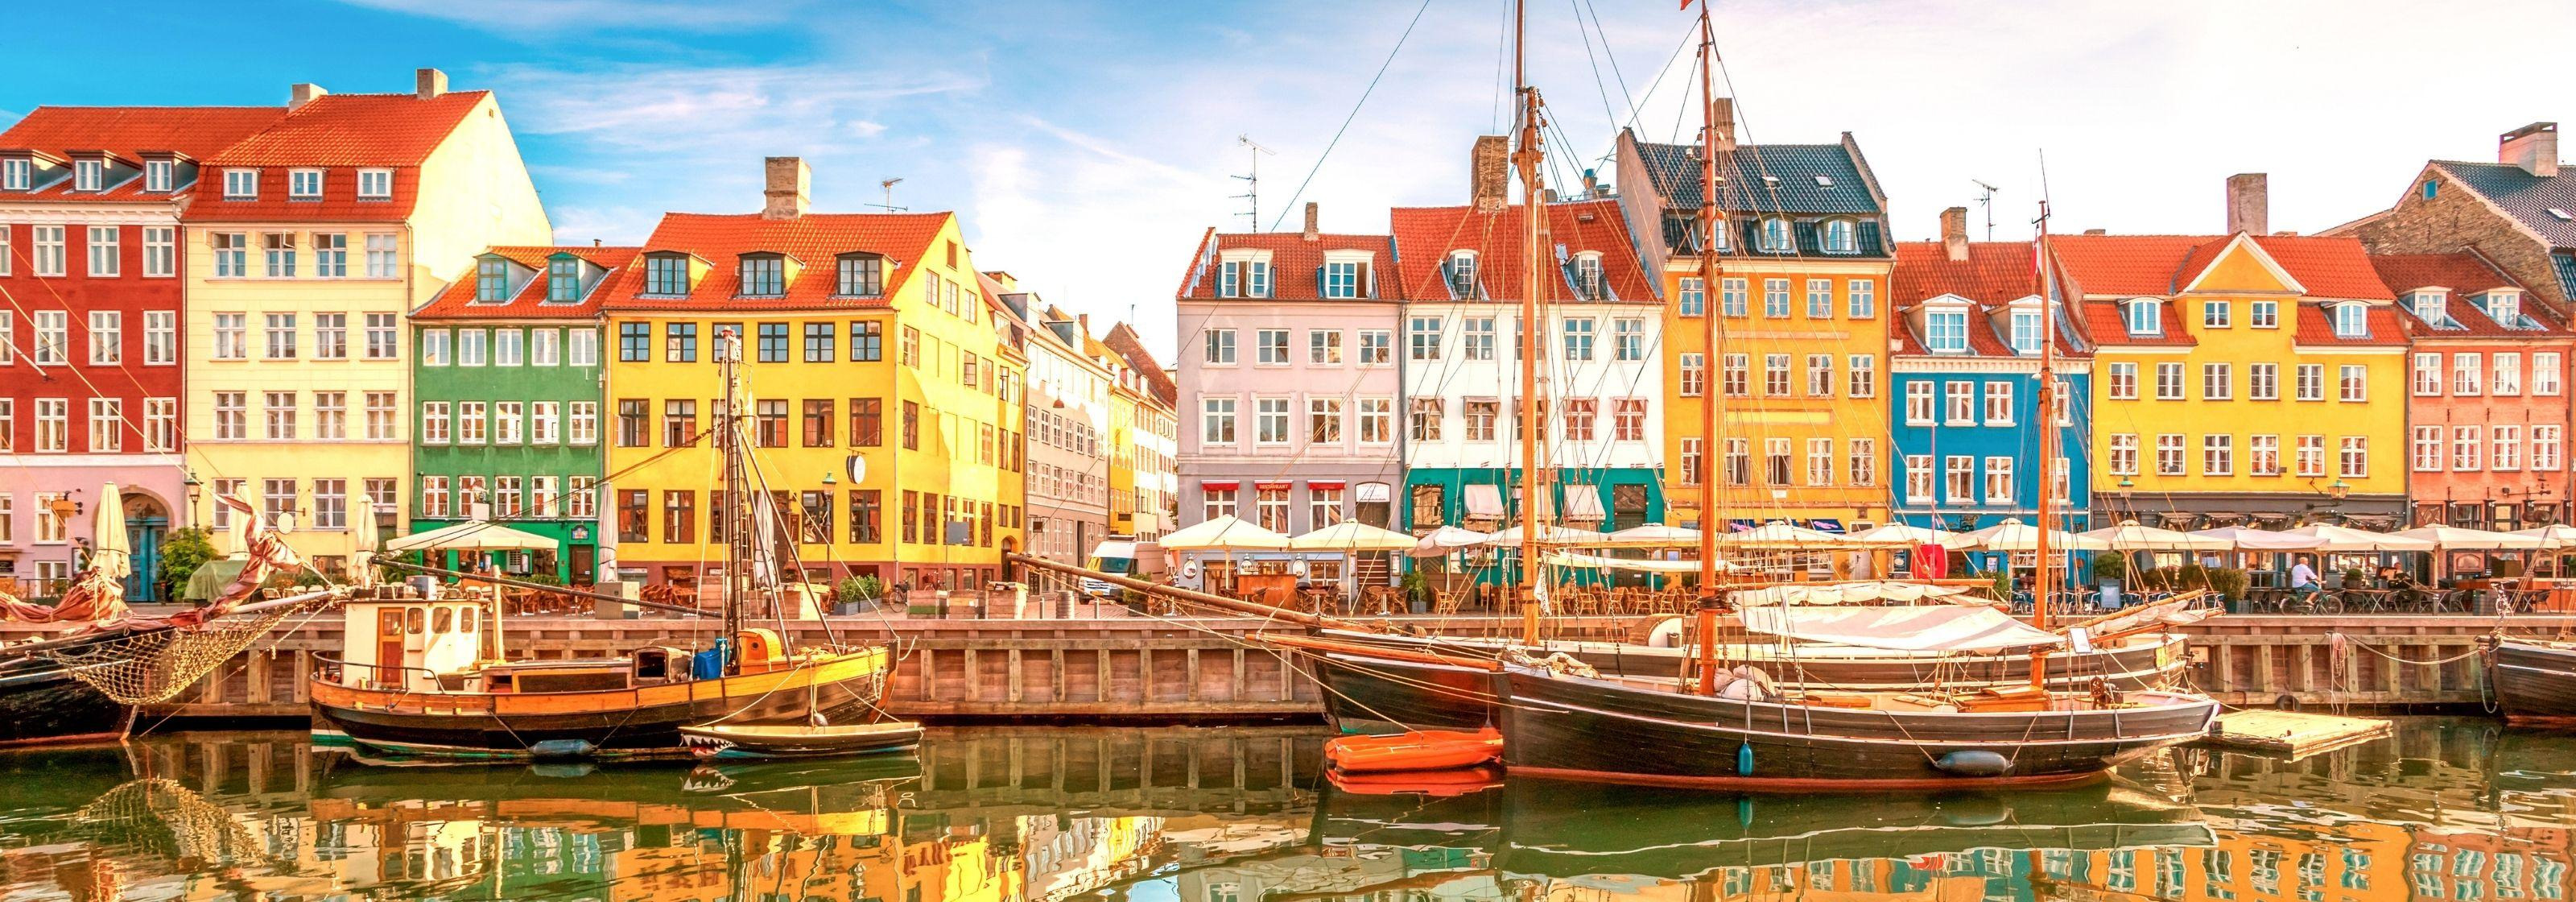 Things to do in Denmark